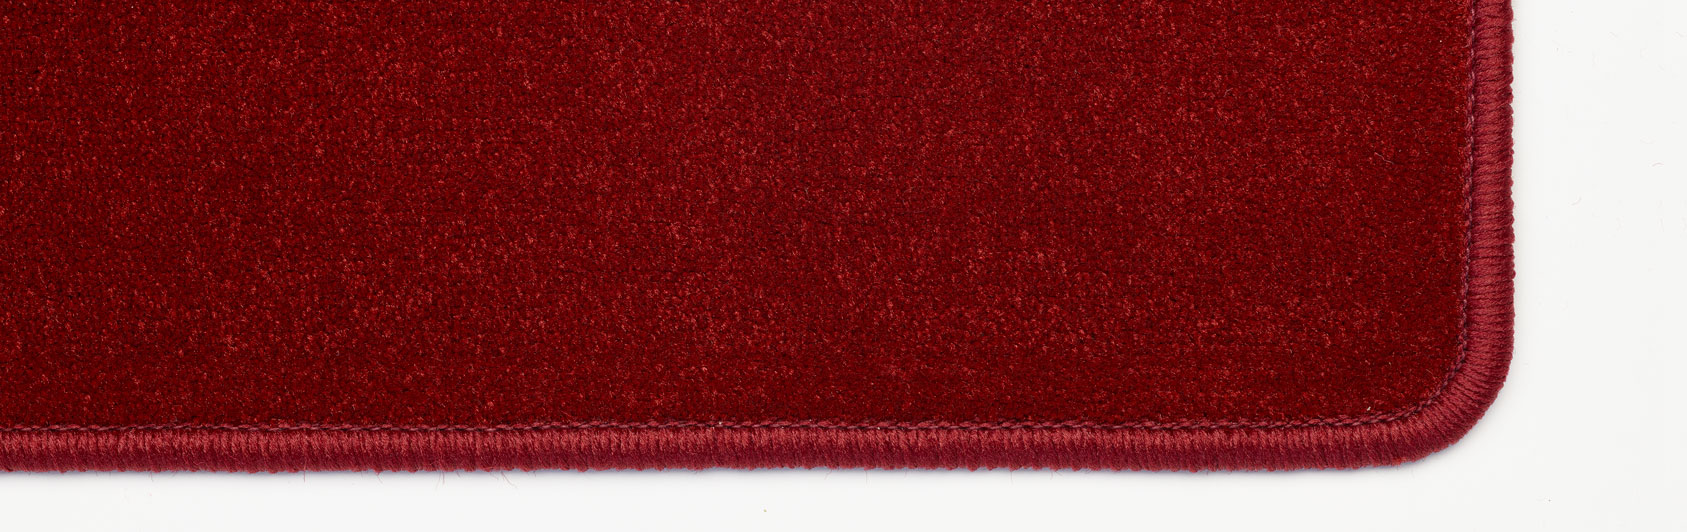 church carpet Capitol color code 12-349 color red